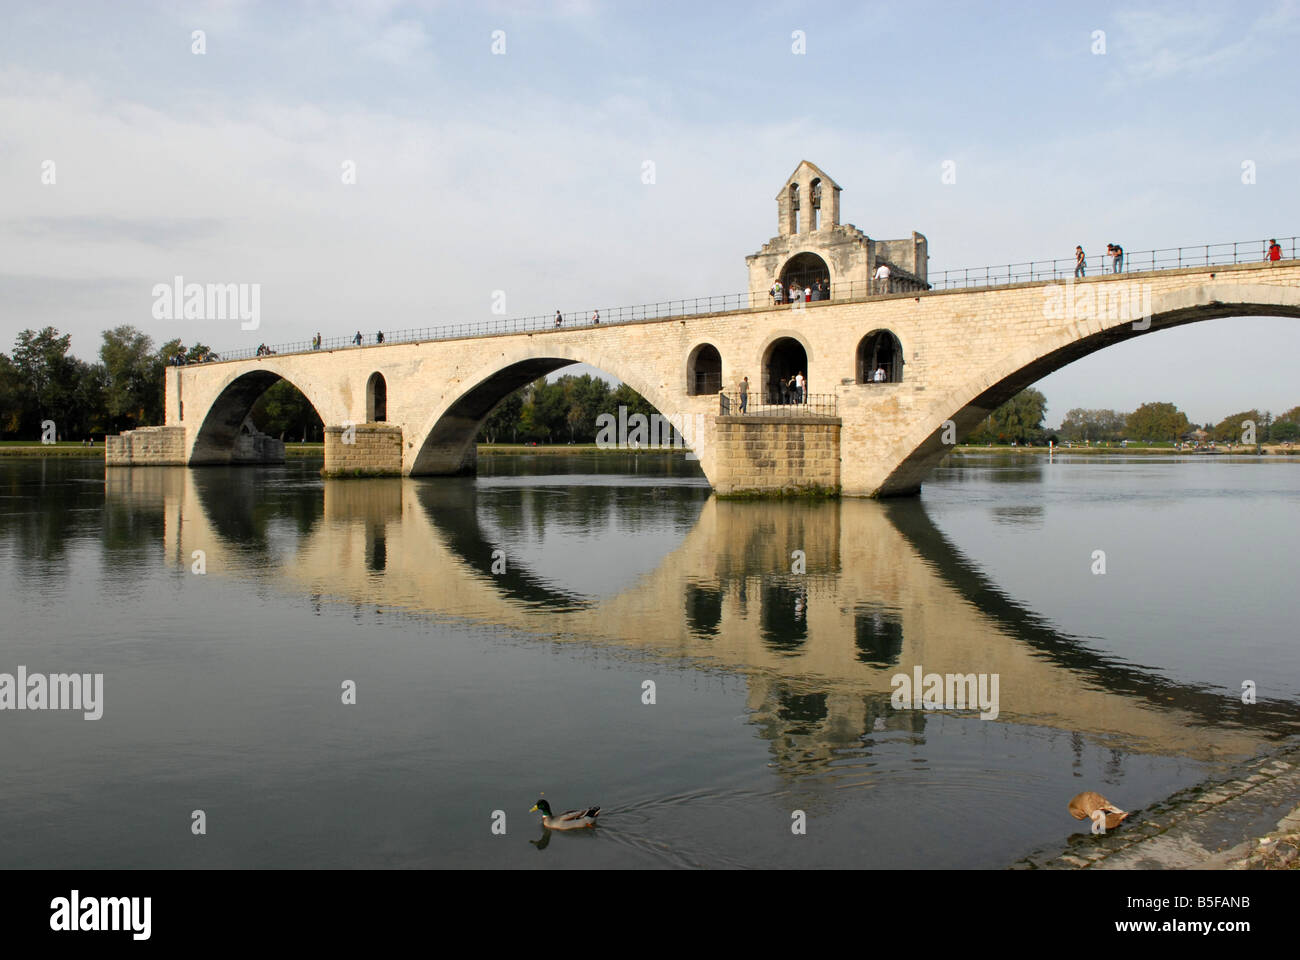 The Pont St Benezet on the River Rhone in Avignon - Stock Image